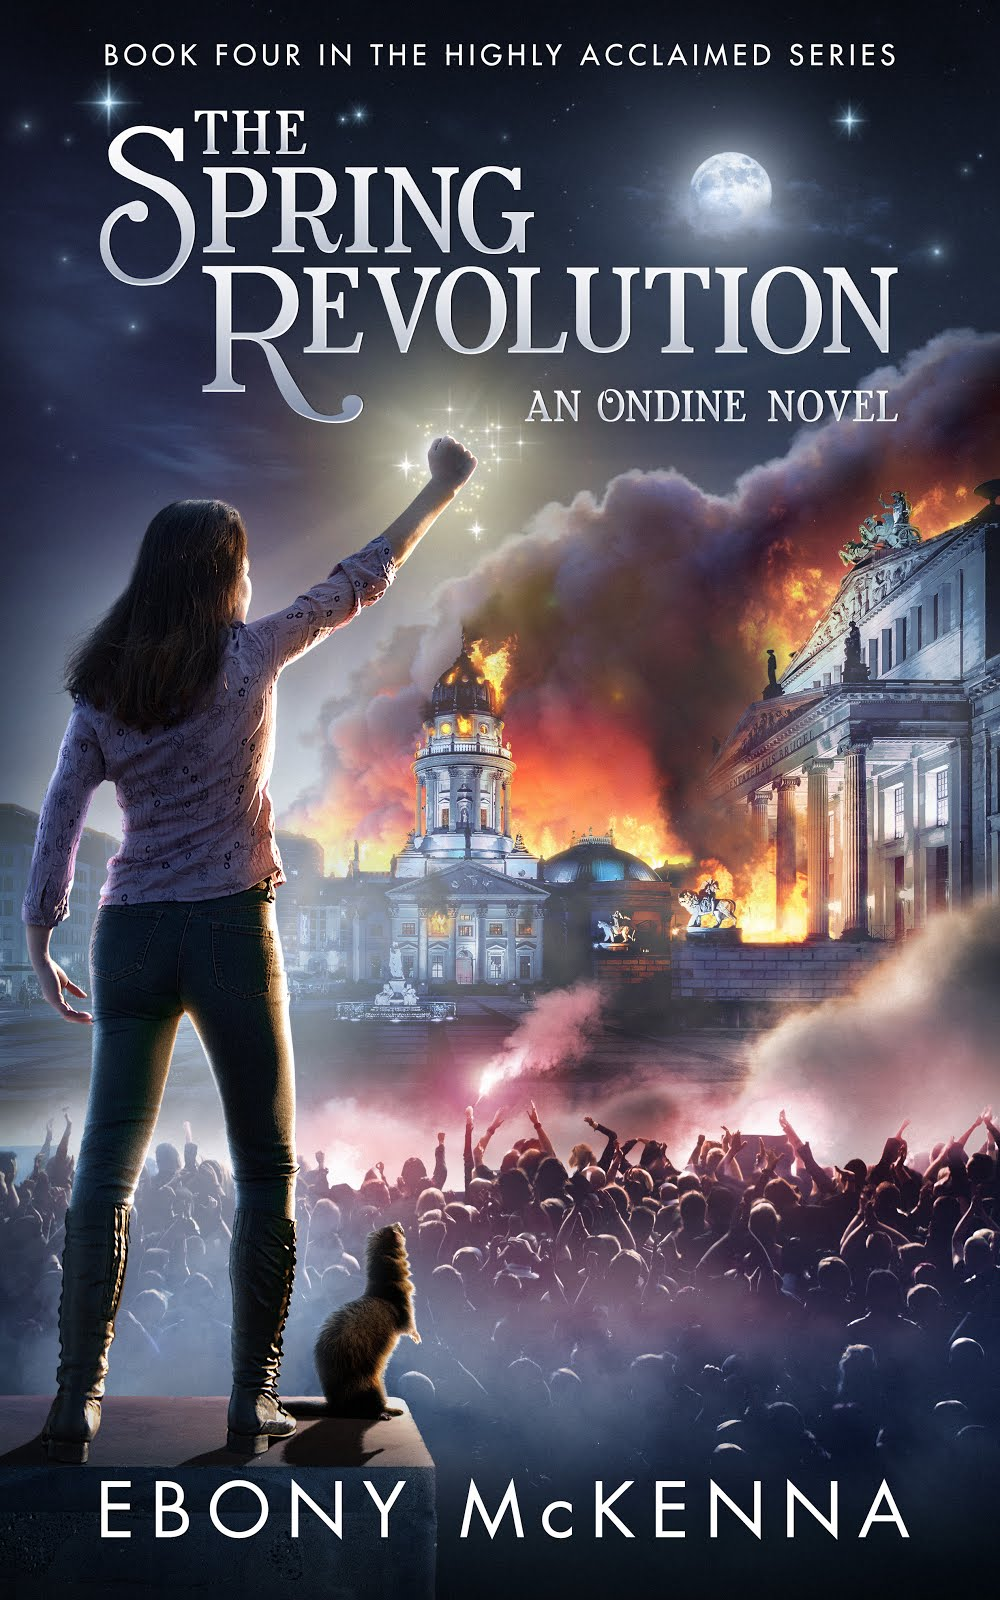 The Spring Revolution (Ondine Book #4)